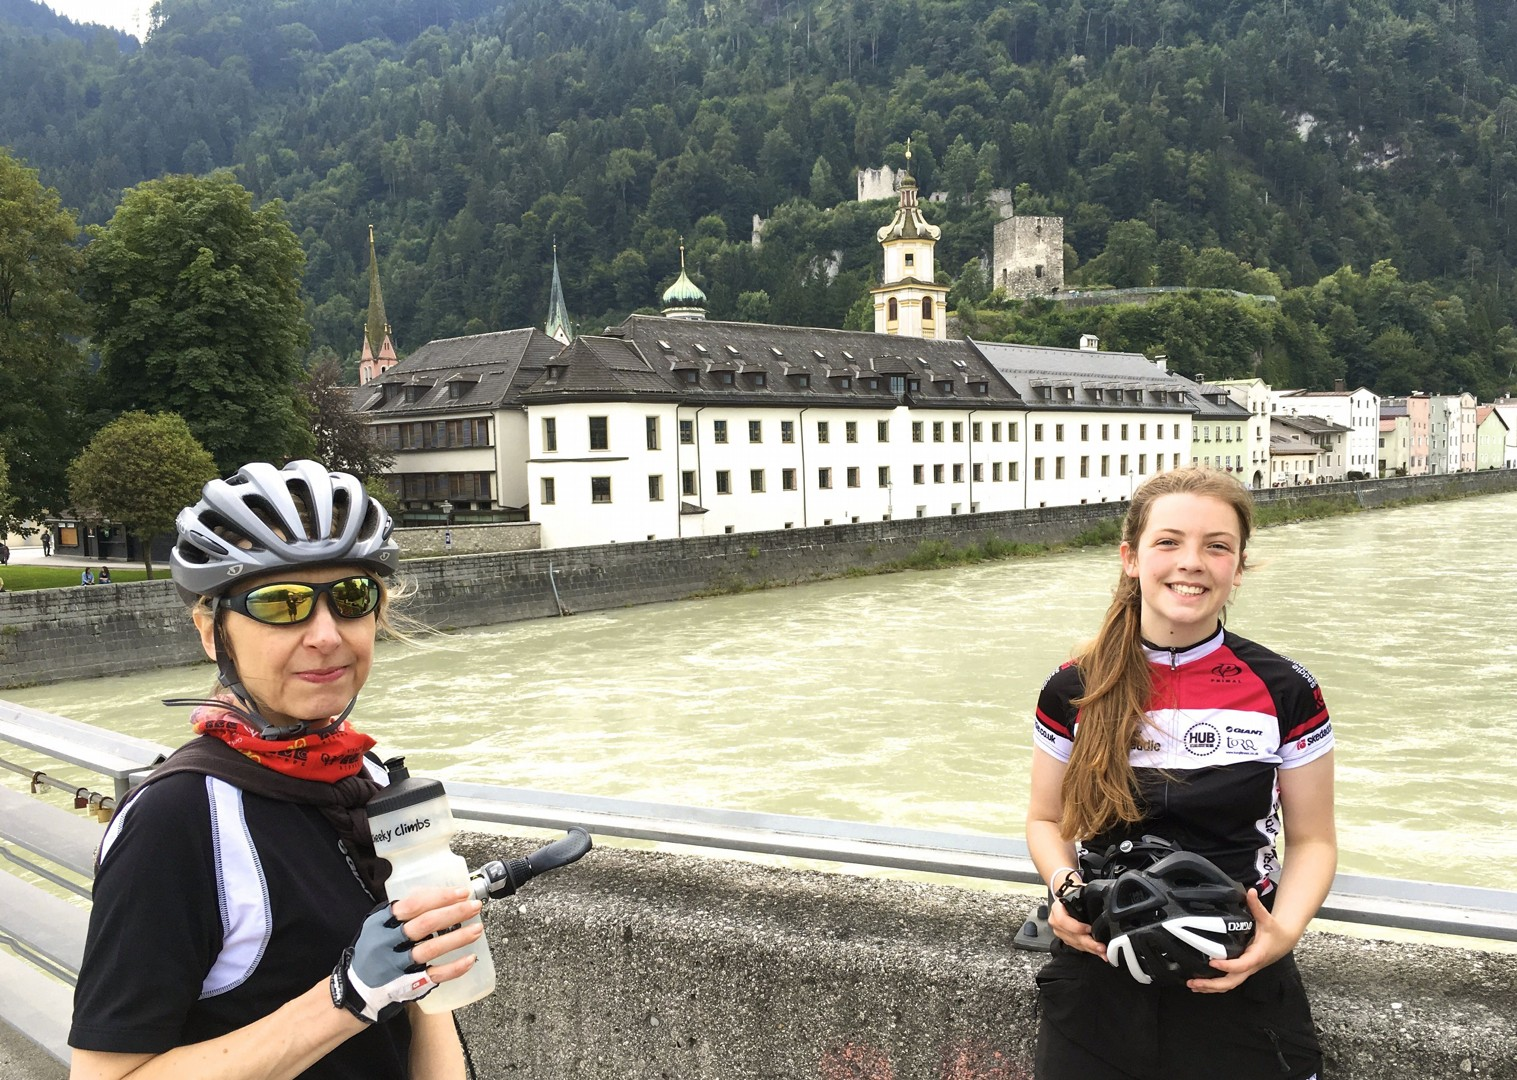 family-cycling-holiday-austria.jpg - Austria - Tyrolean Valleys - Self-Guided Leisure Cycling Holiday - Leisure Cycling